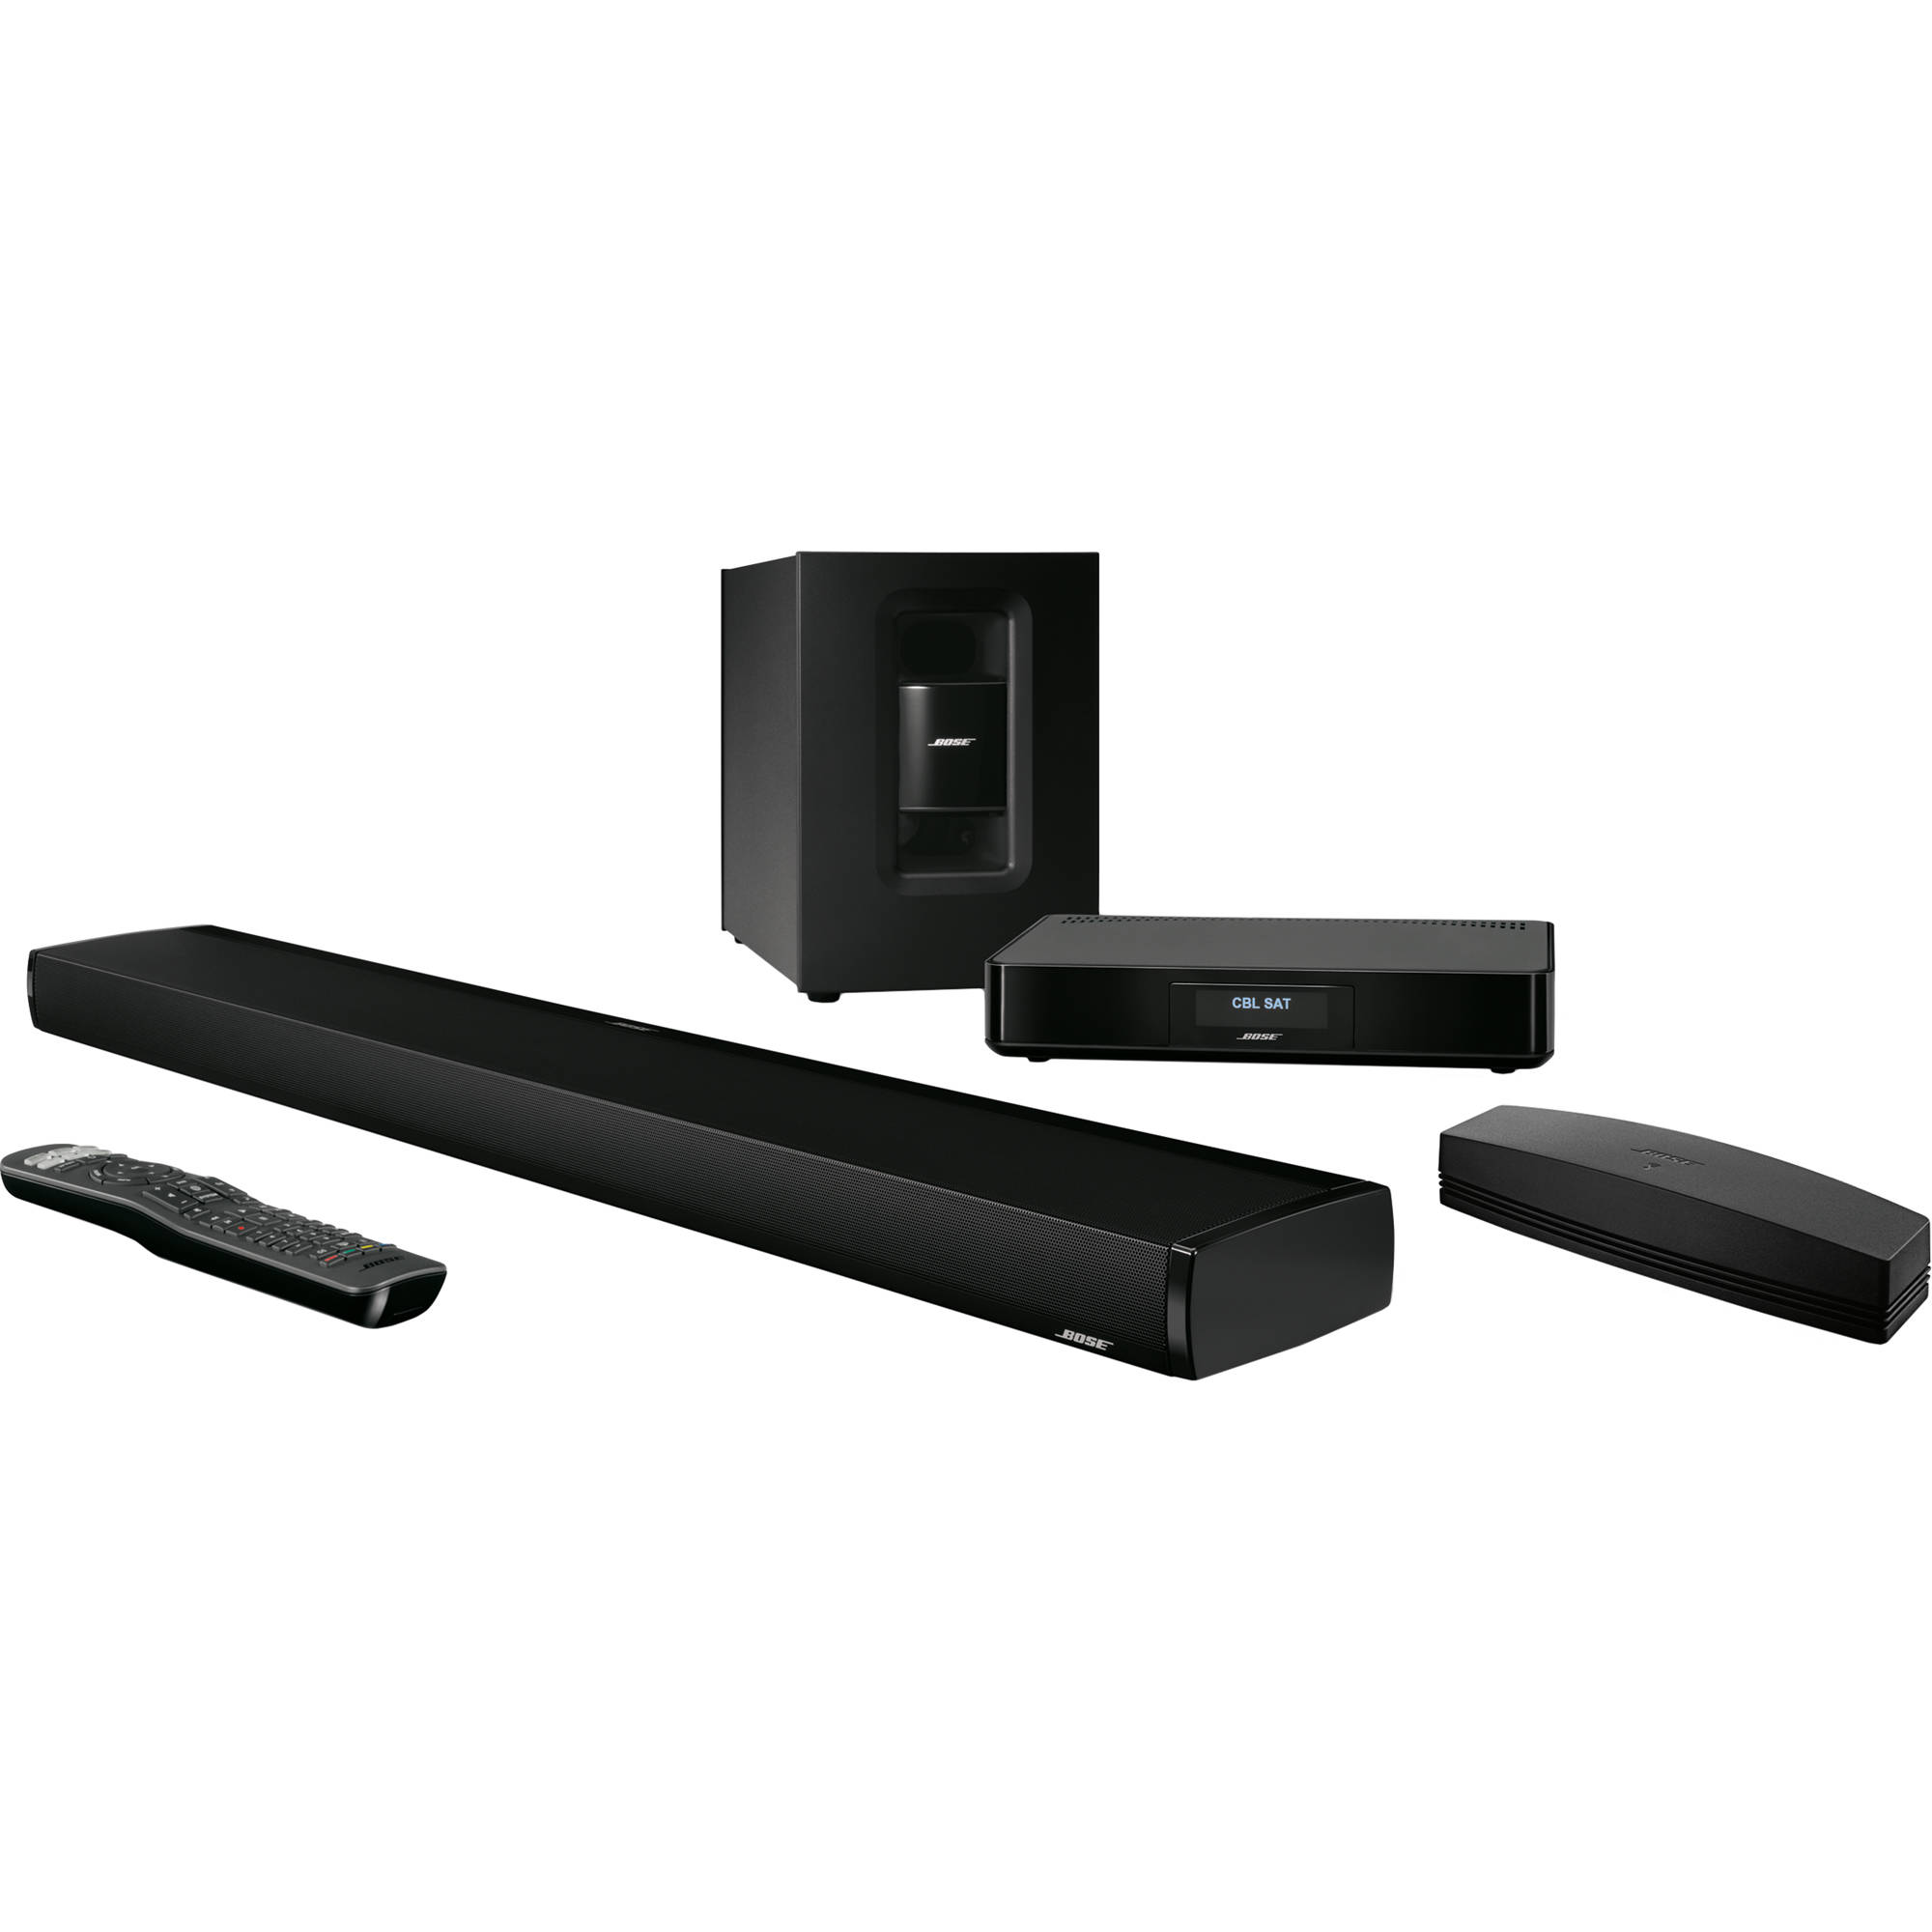 W650d together with 32758123953 together with Bose 738484 1100 soundtouch 130 home theater further Watch likewise 332063485520. on digital optical audio out adapter